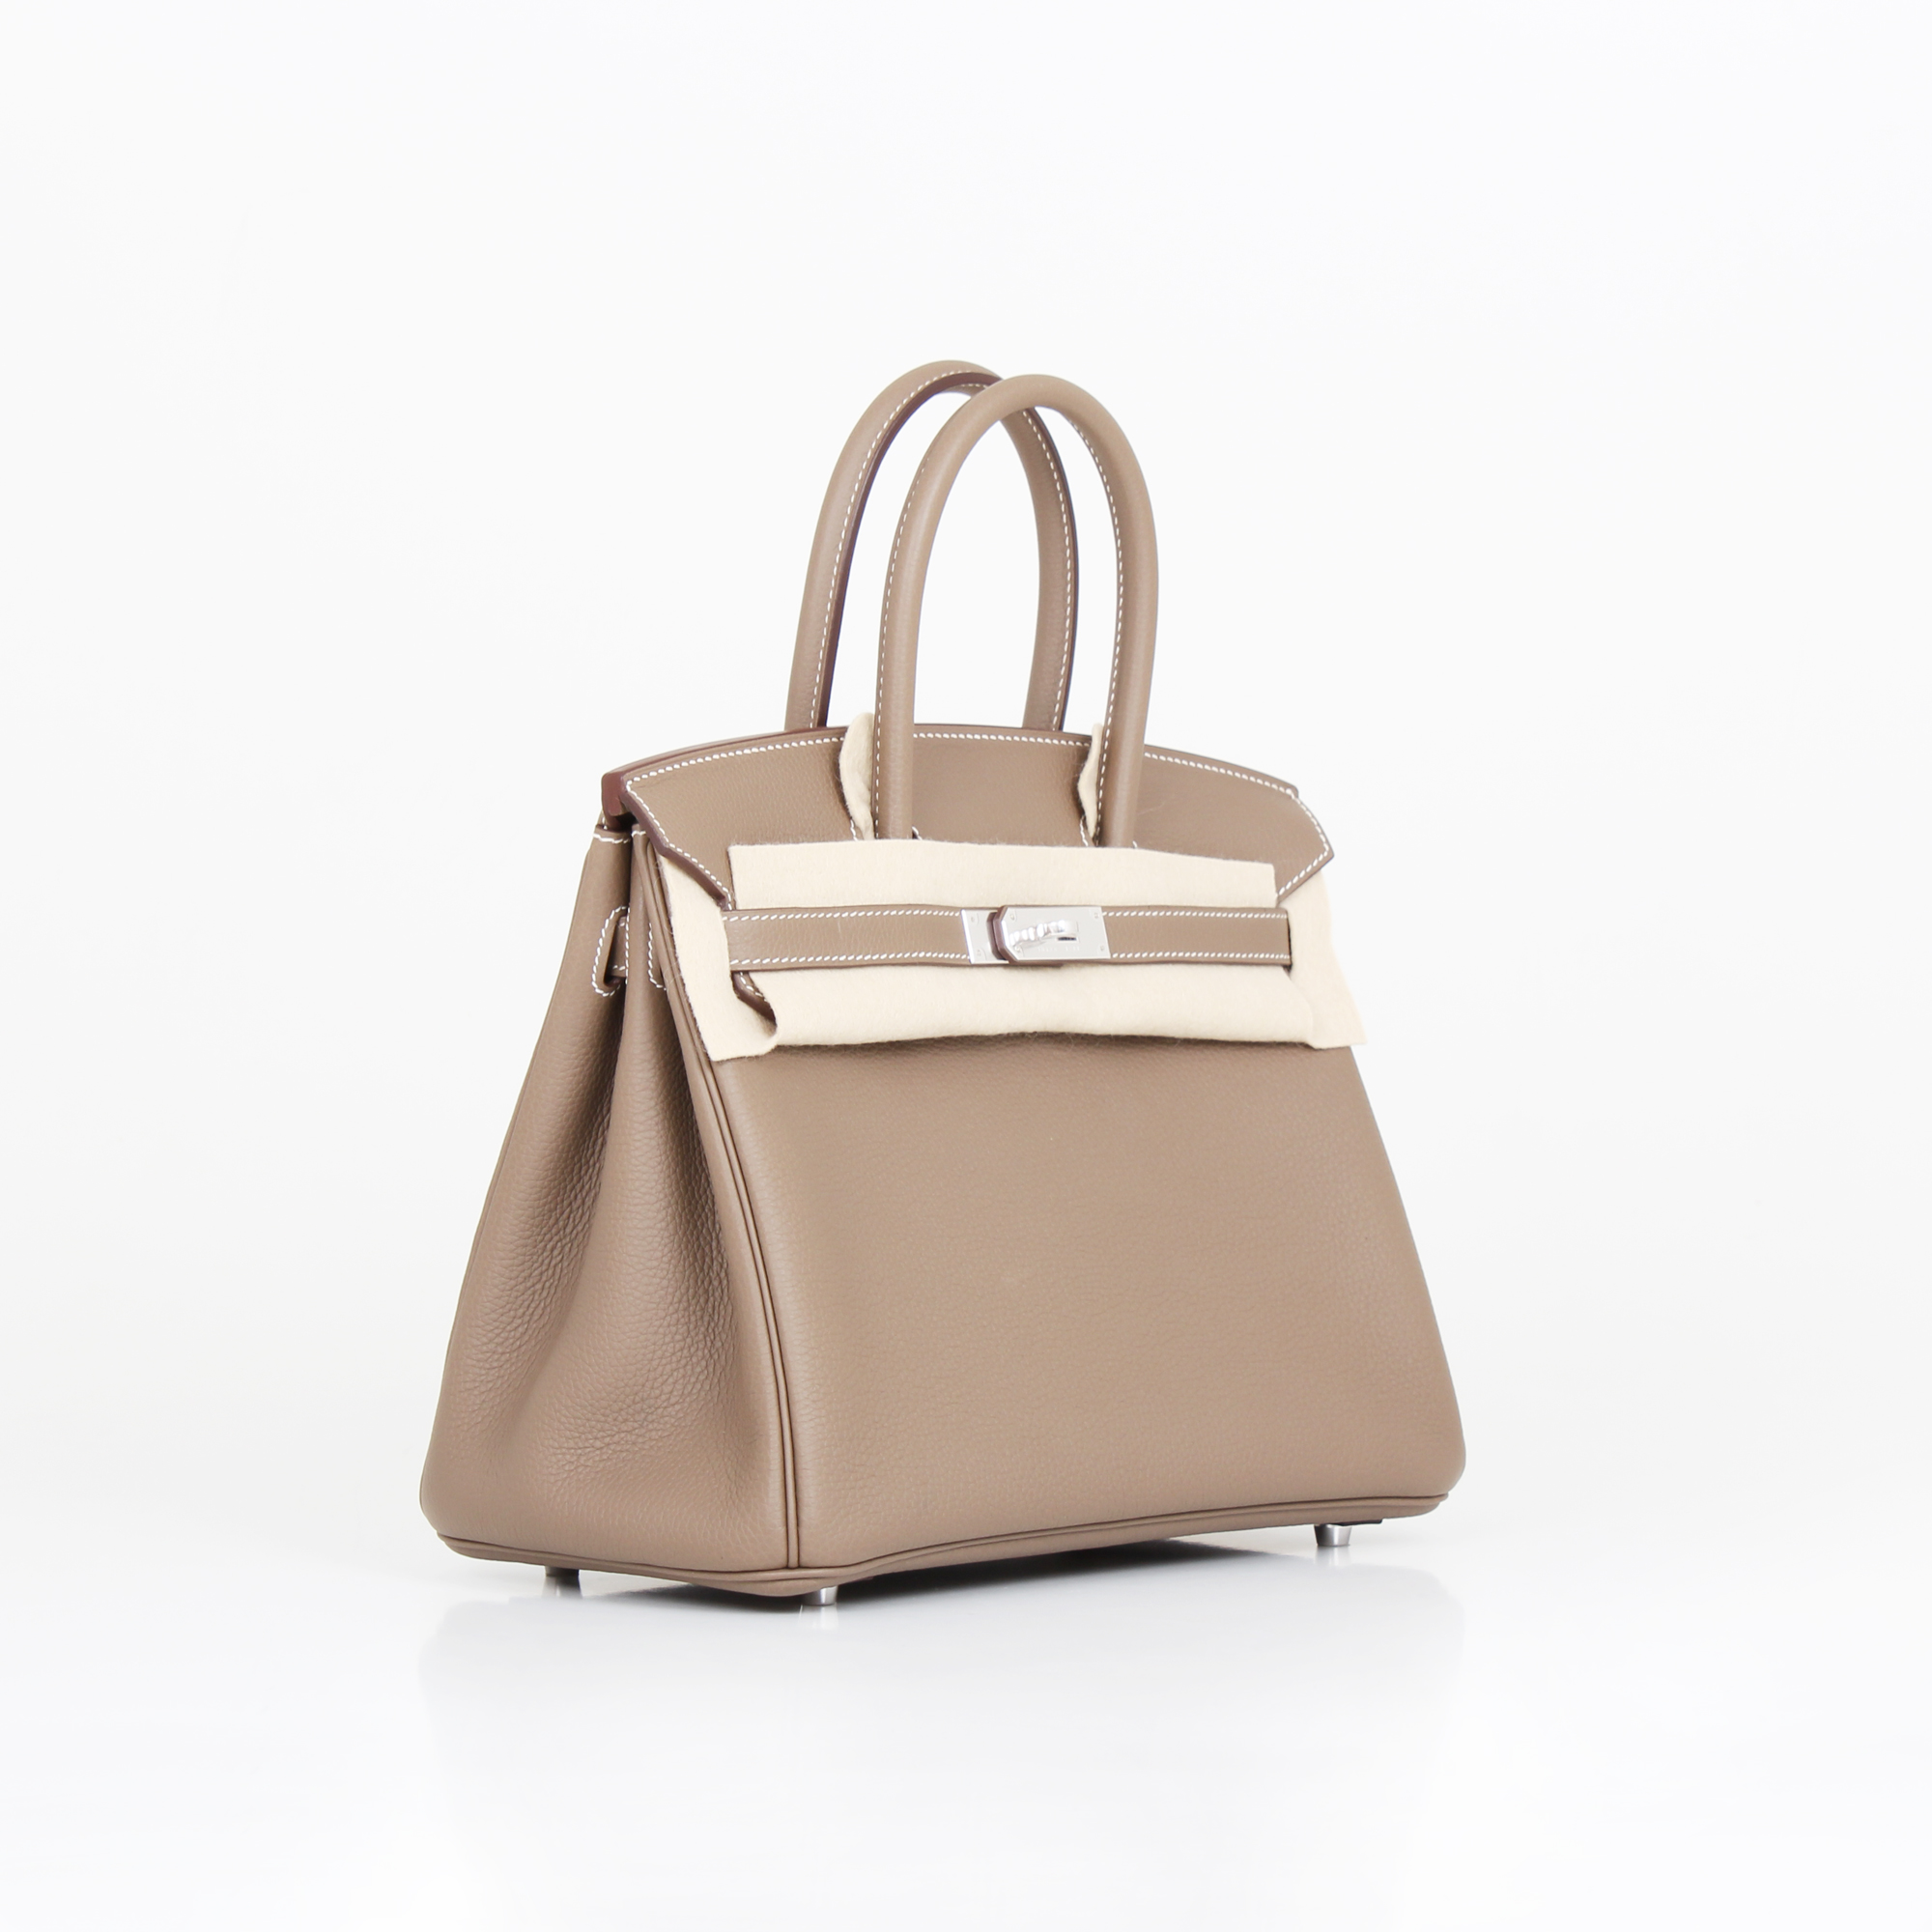 f1166615f04 General image of hermes birkin bag taupe togo with protective cloth